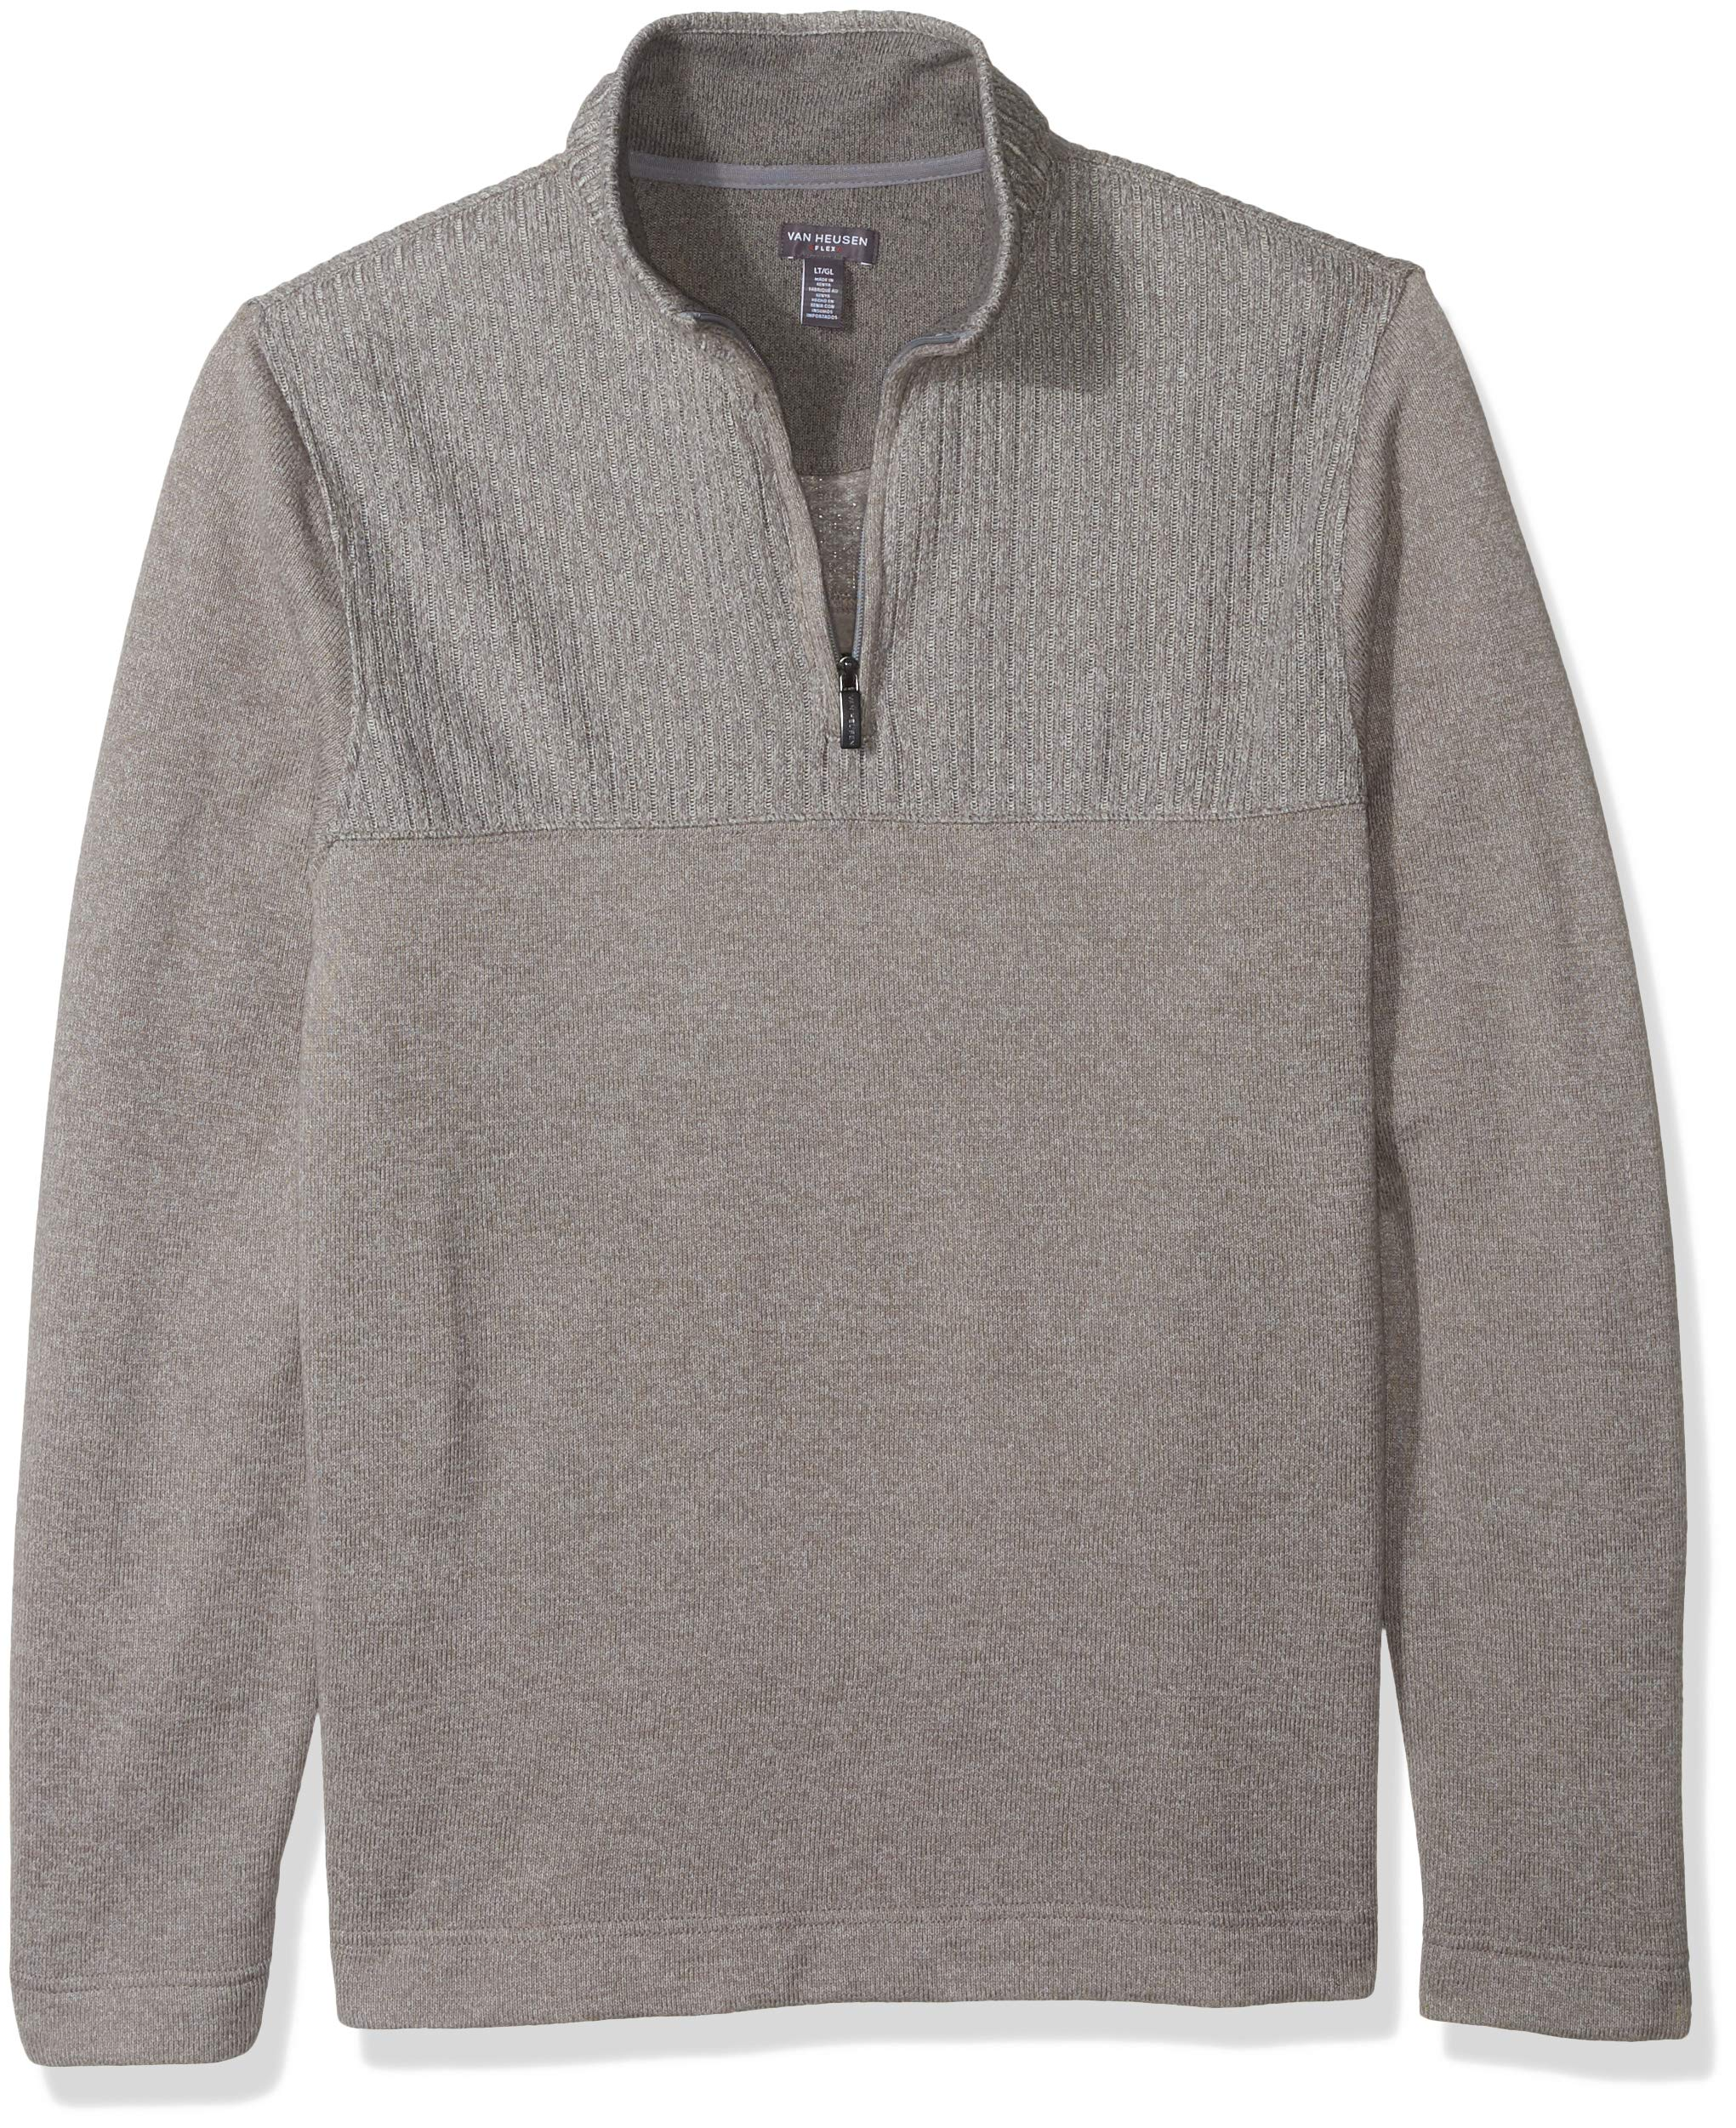 Van Heusen Men's Size Big and Tall Flex 1/4-zip Solid Sweater, grey Cumulus, X-Large Tall